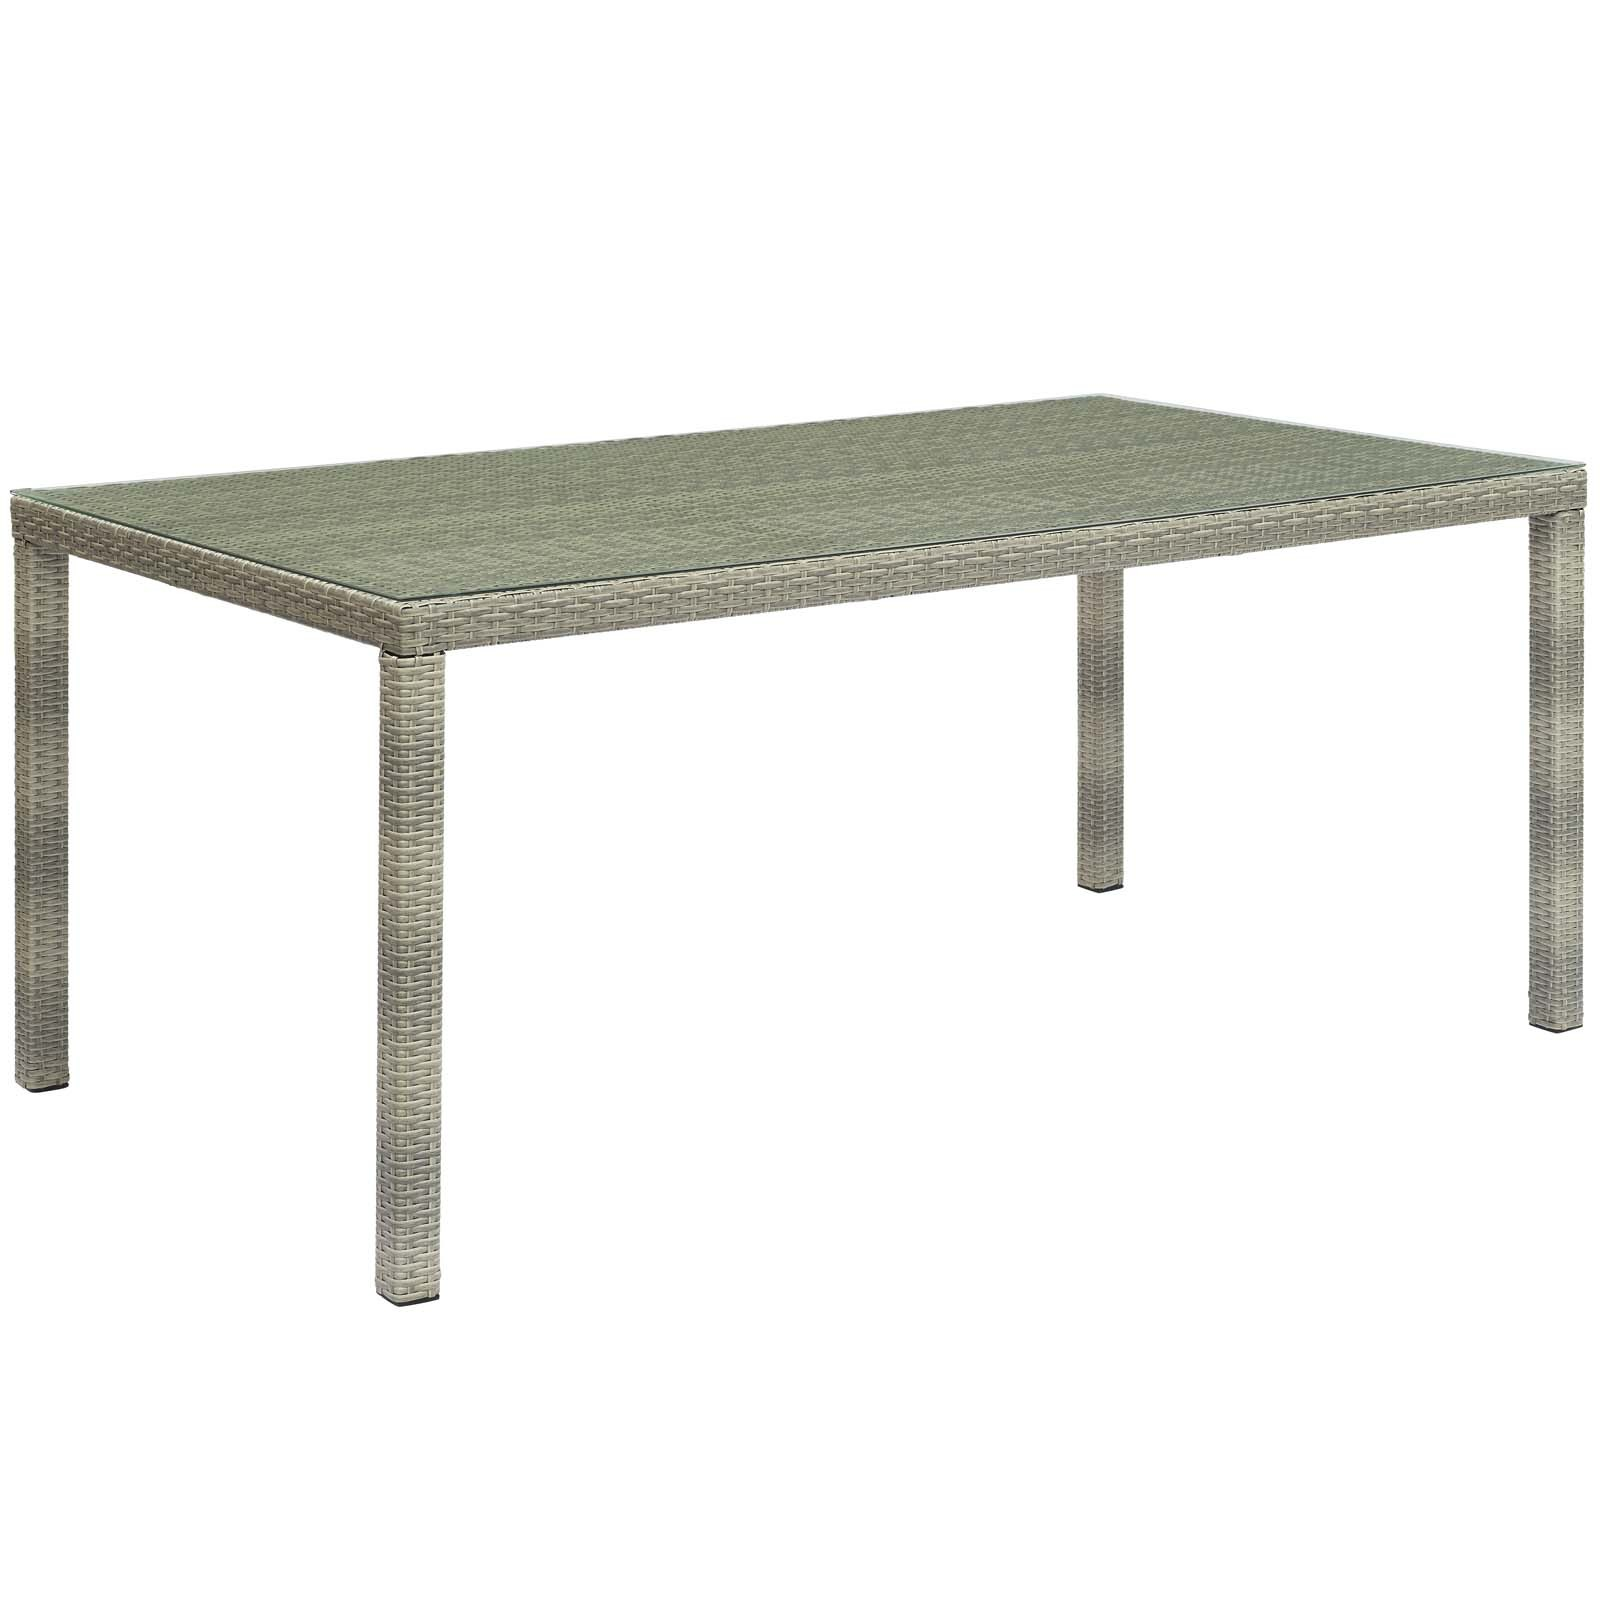 "Conduit 70"" Outdoor Patio Wicker Rattan Dining Table in Light Gray"